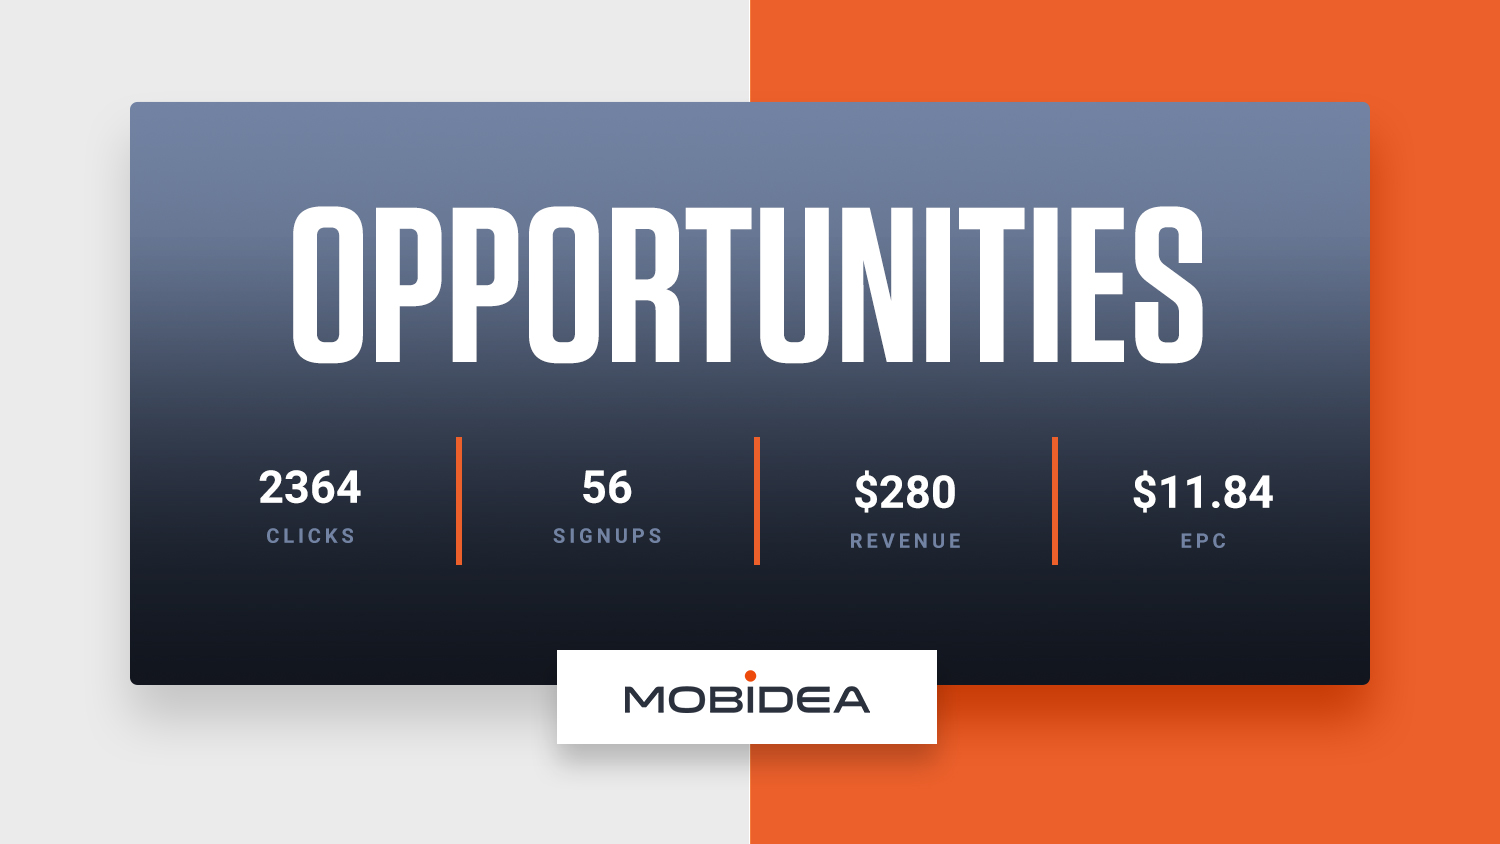 Mobidea-Guide--Opportunities-and-Stats-Menu